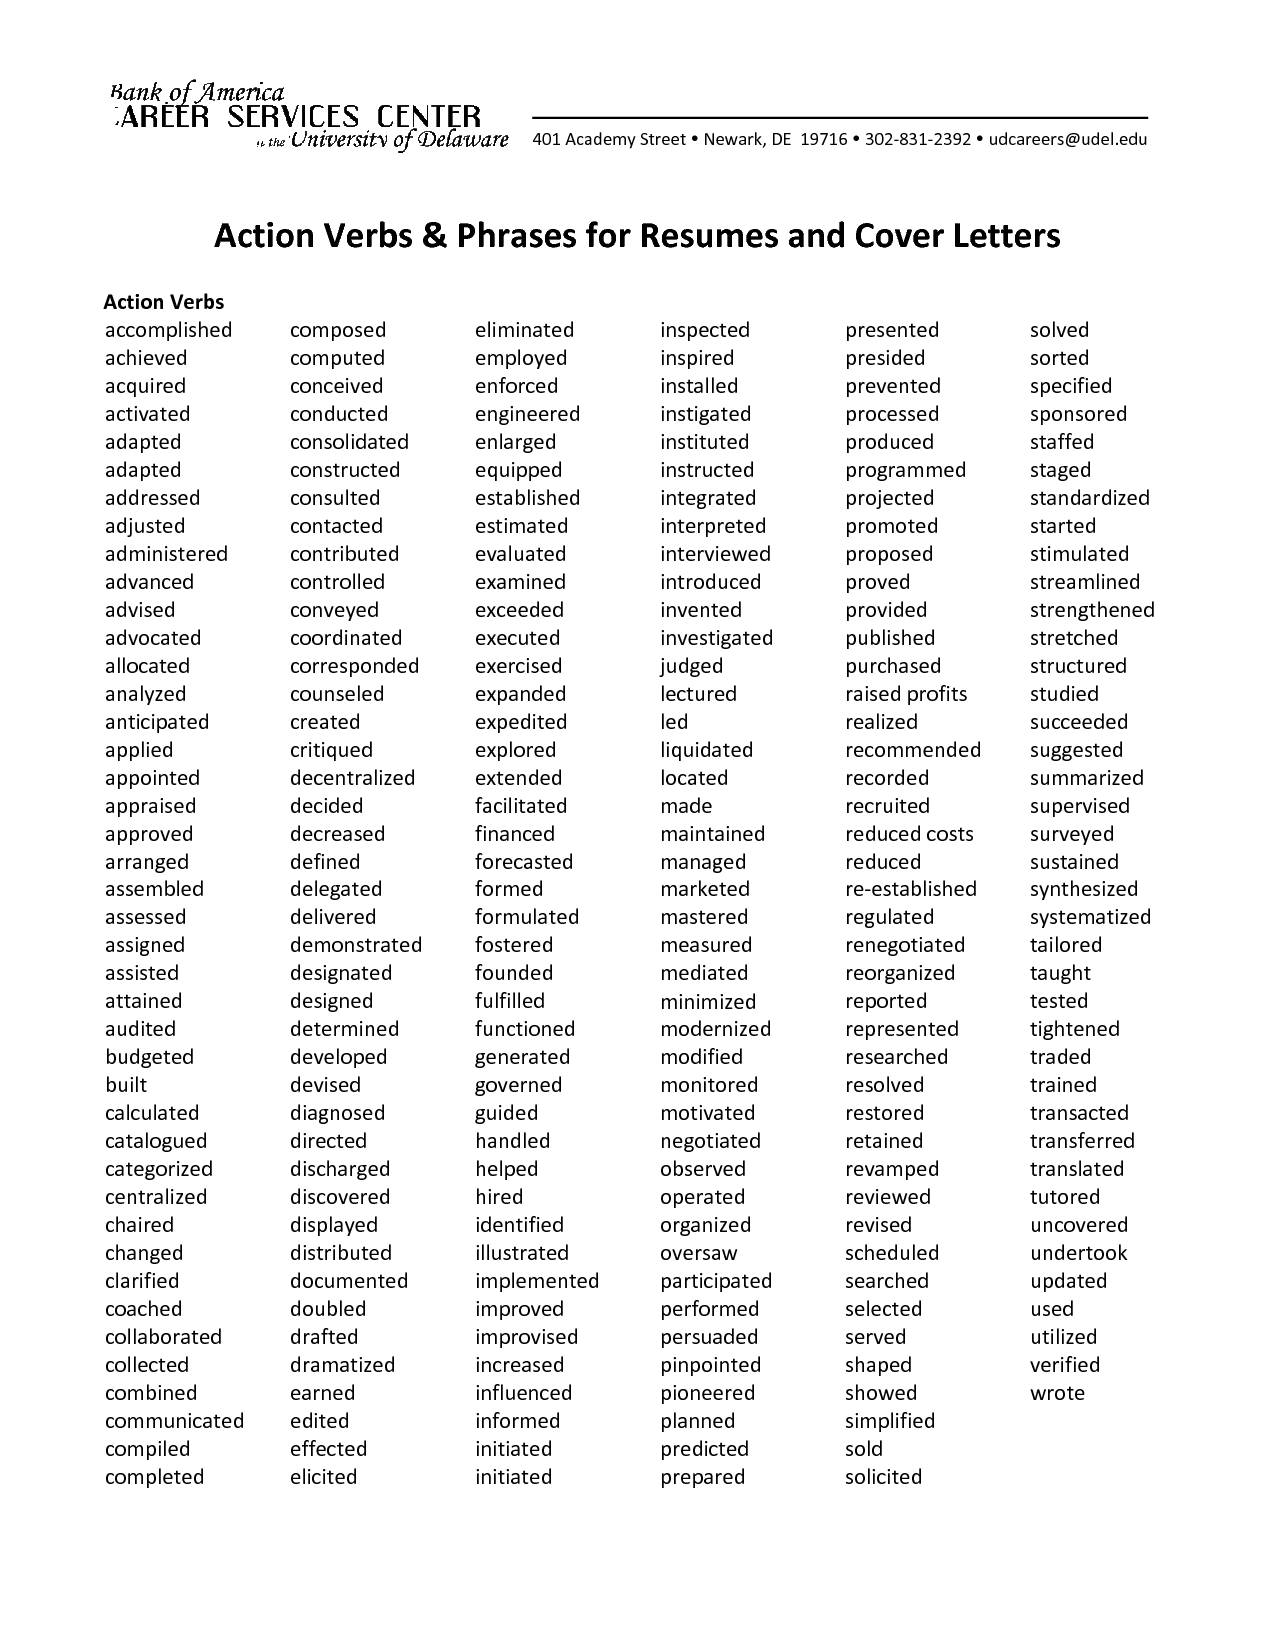 action verbs phrases for resumes and cover letters